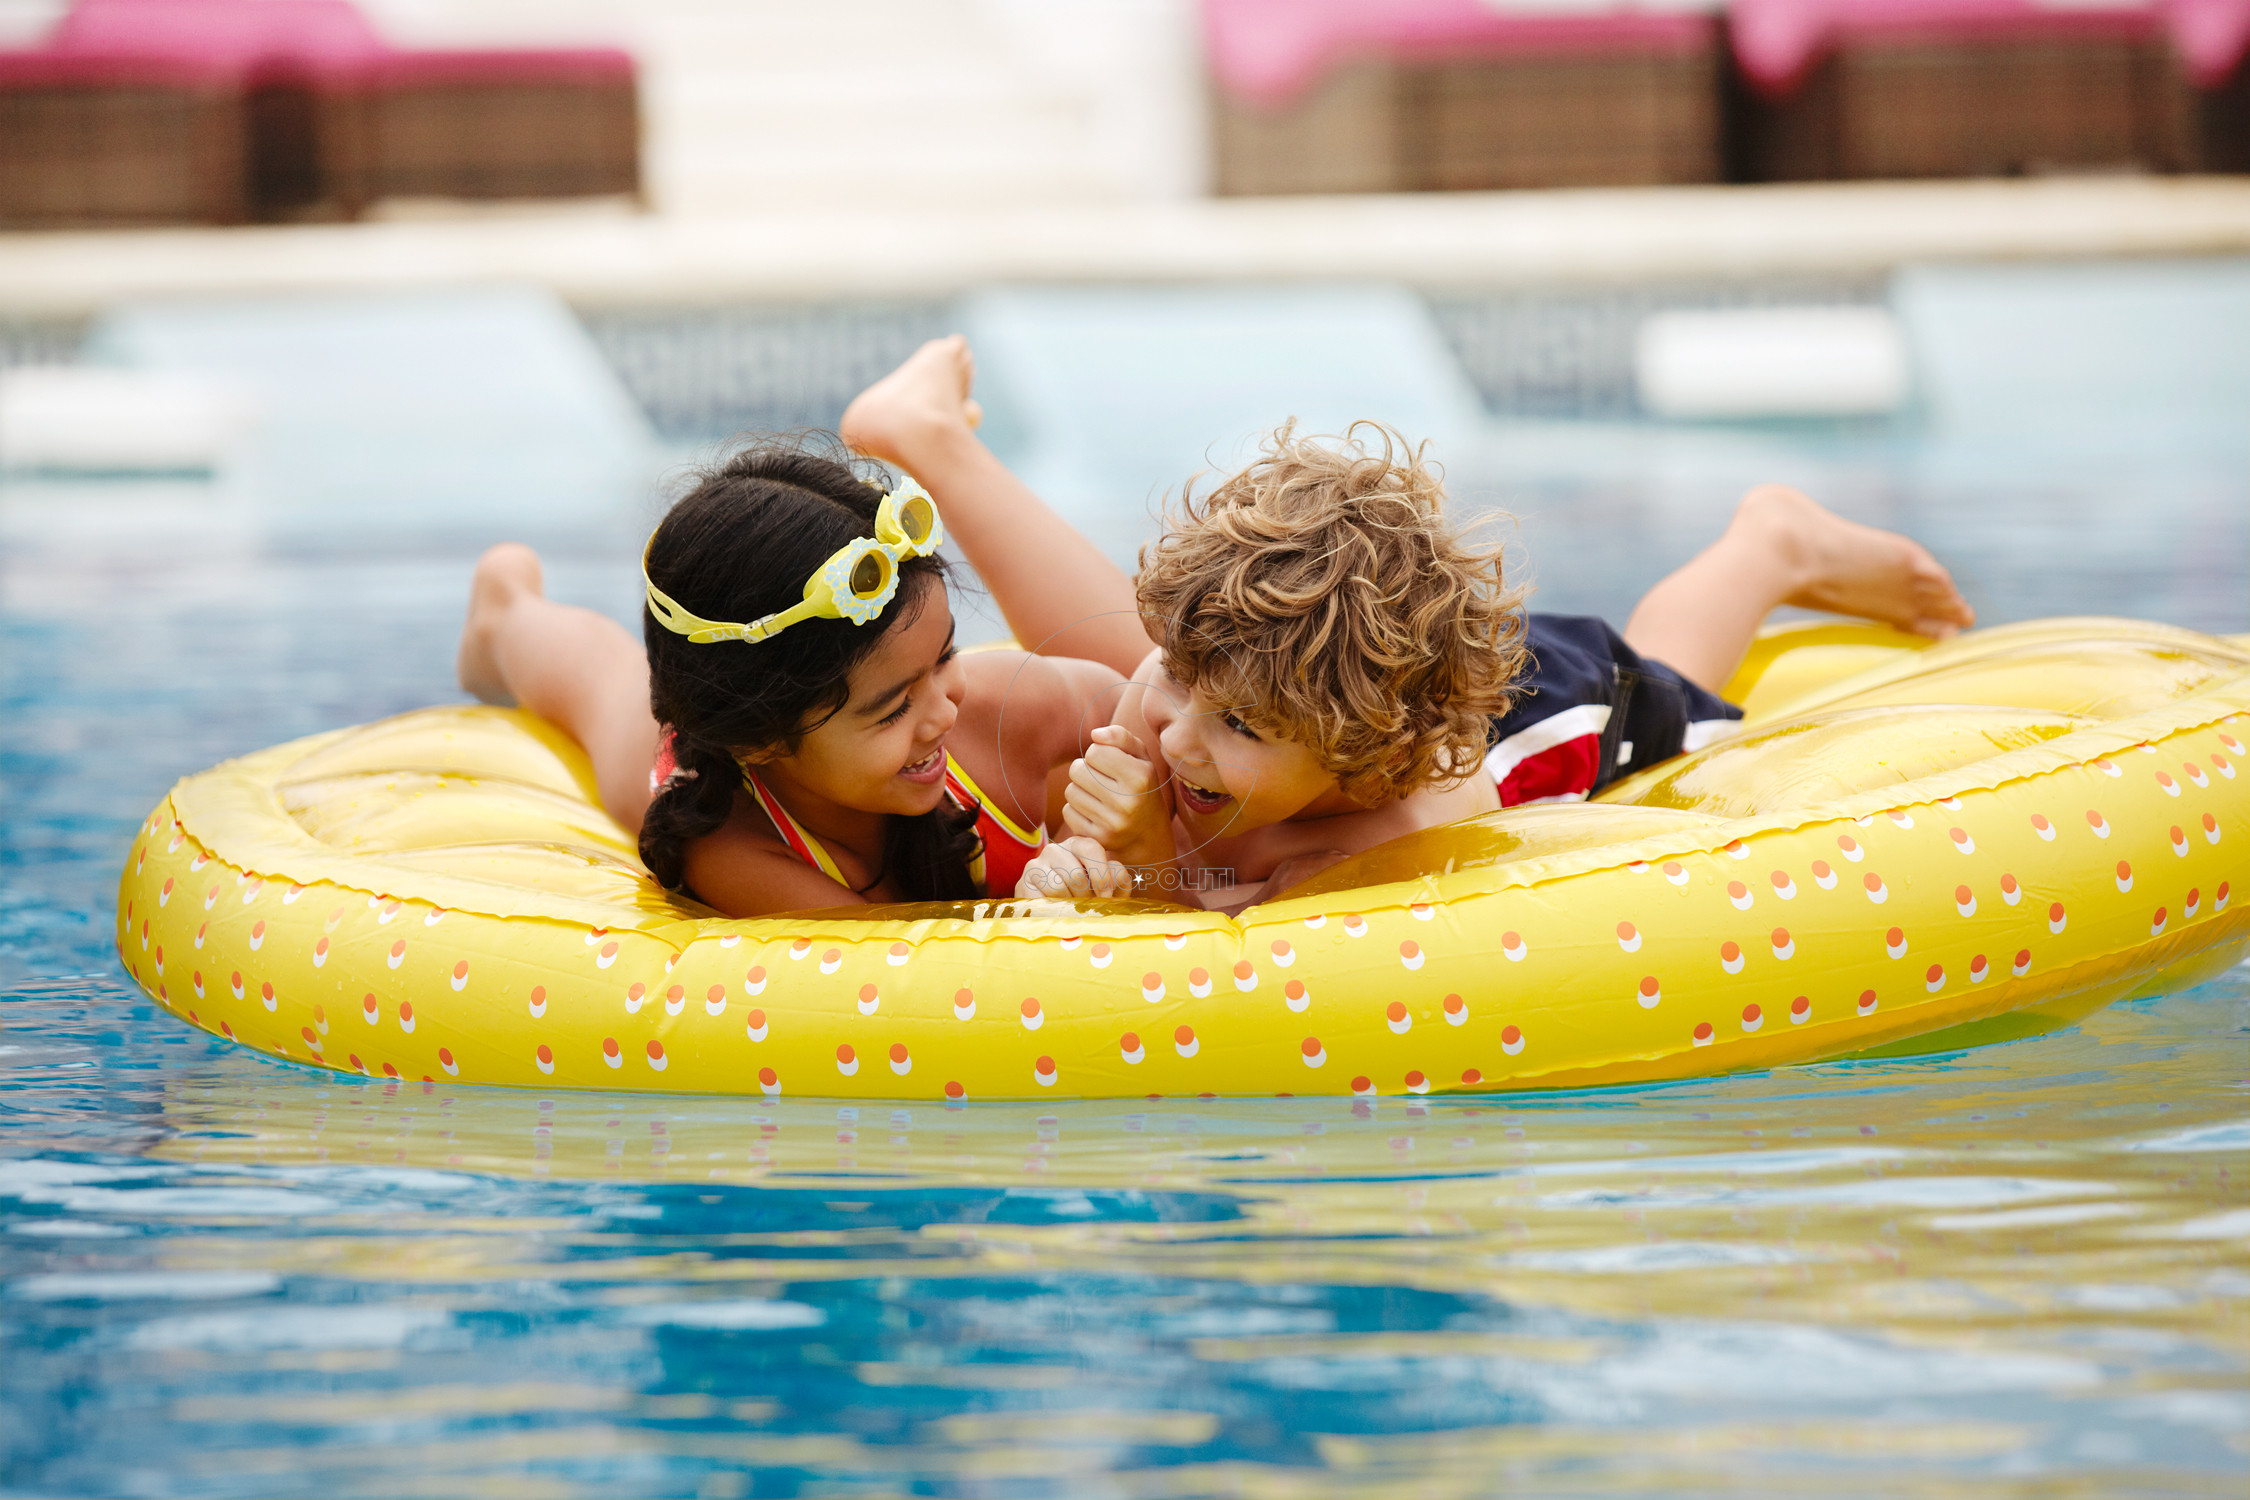 Kids_Raft_Pool_40714_med